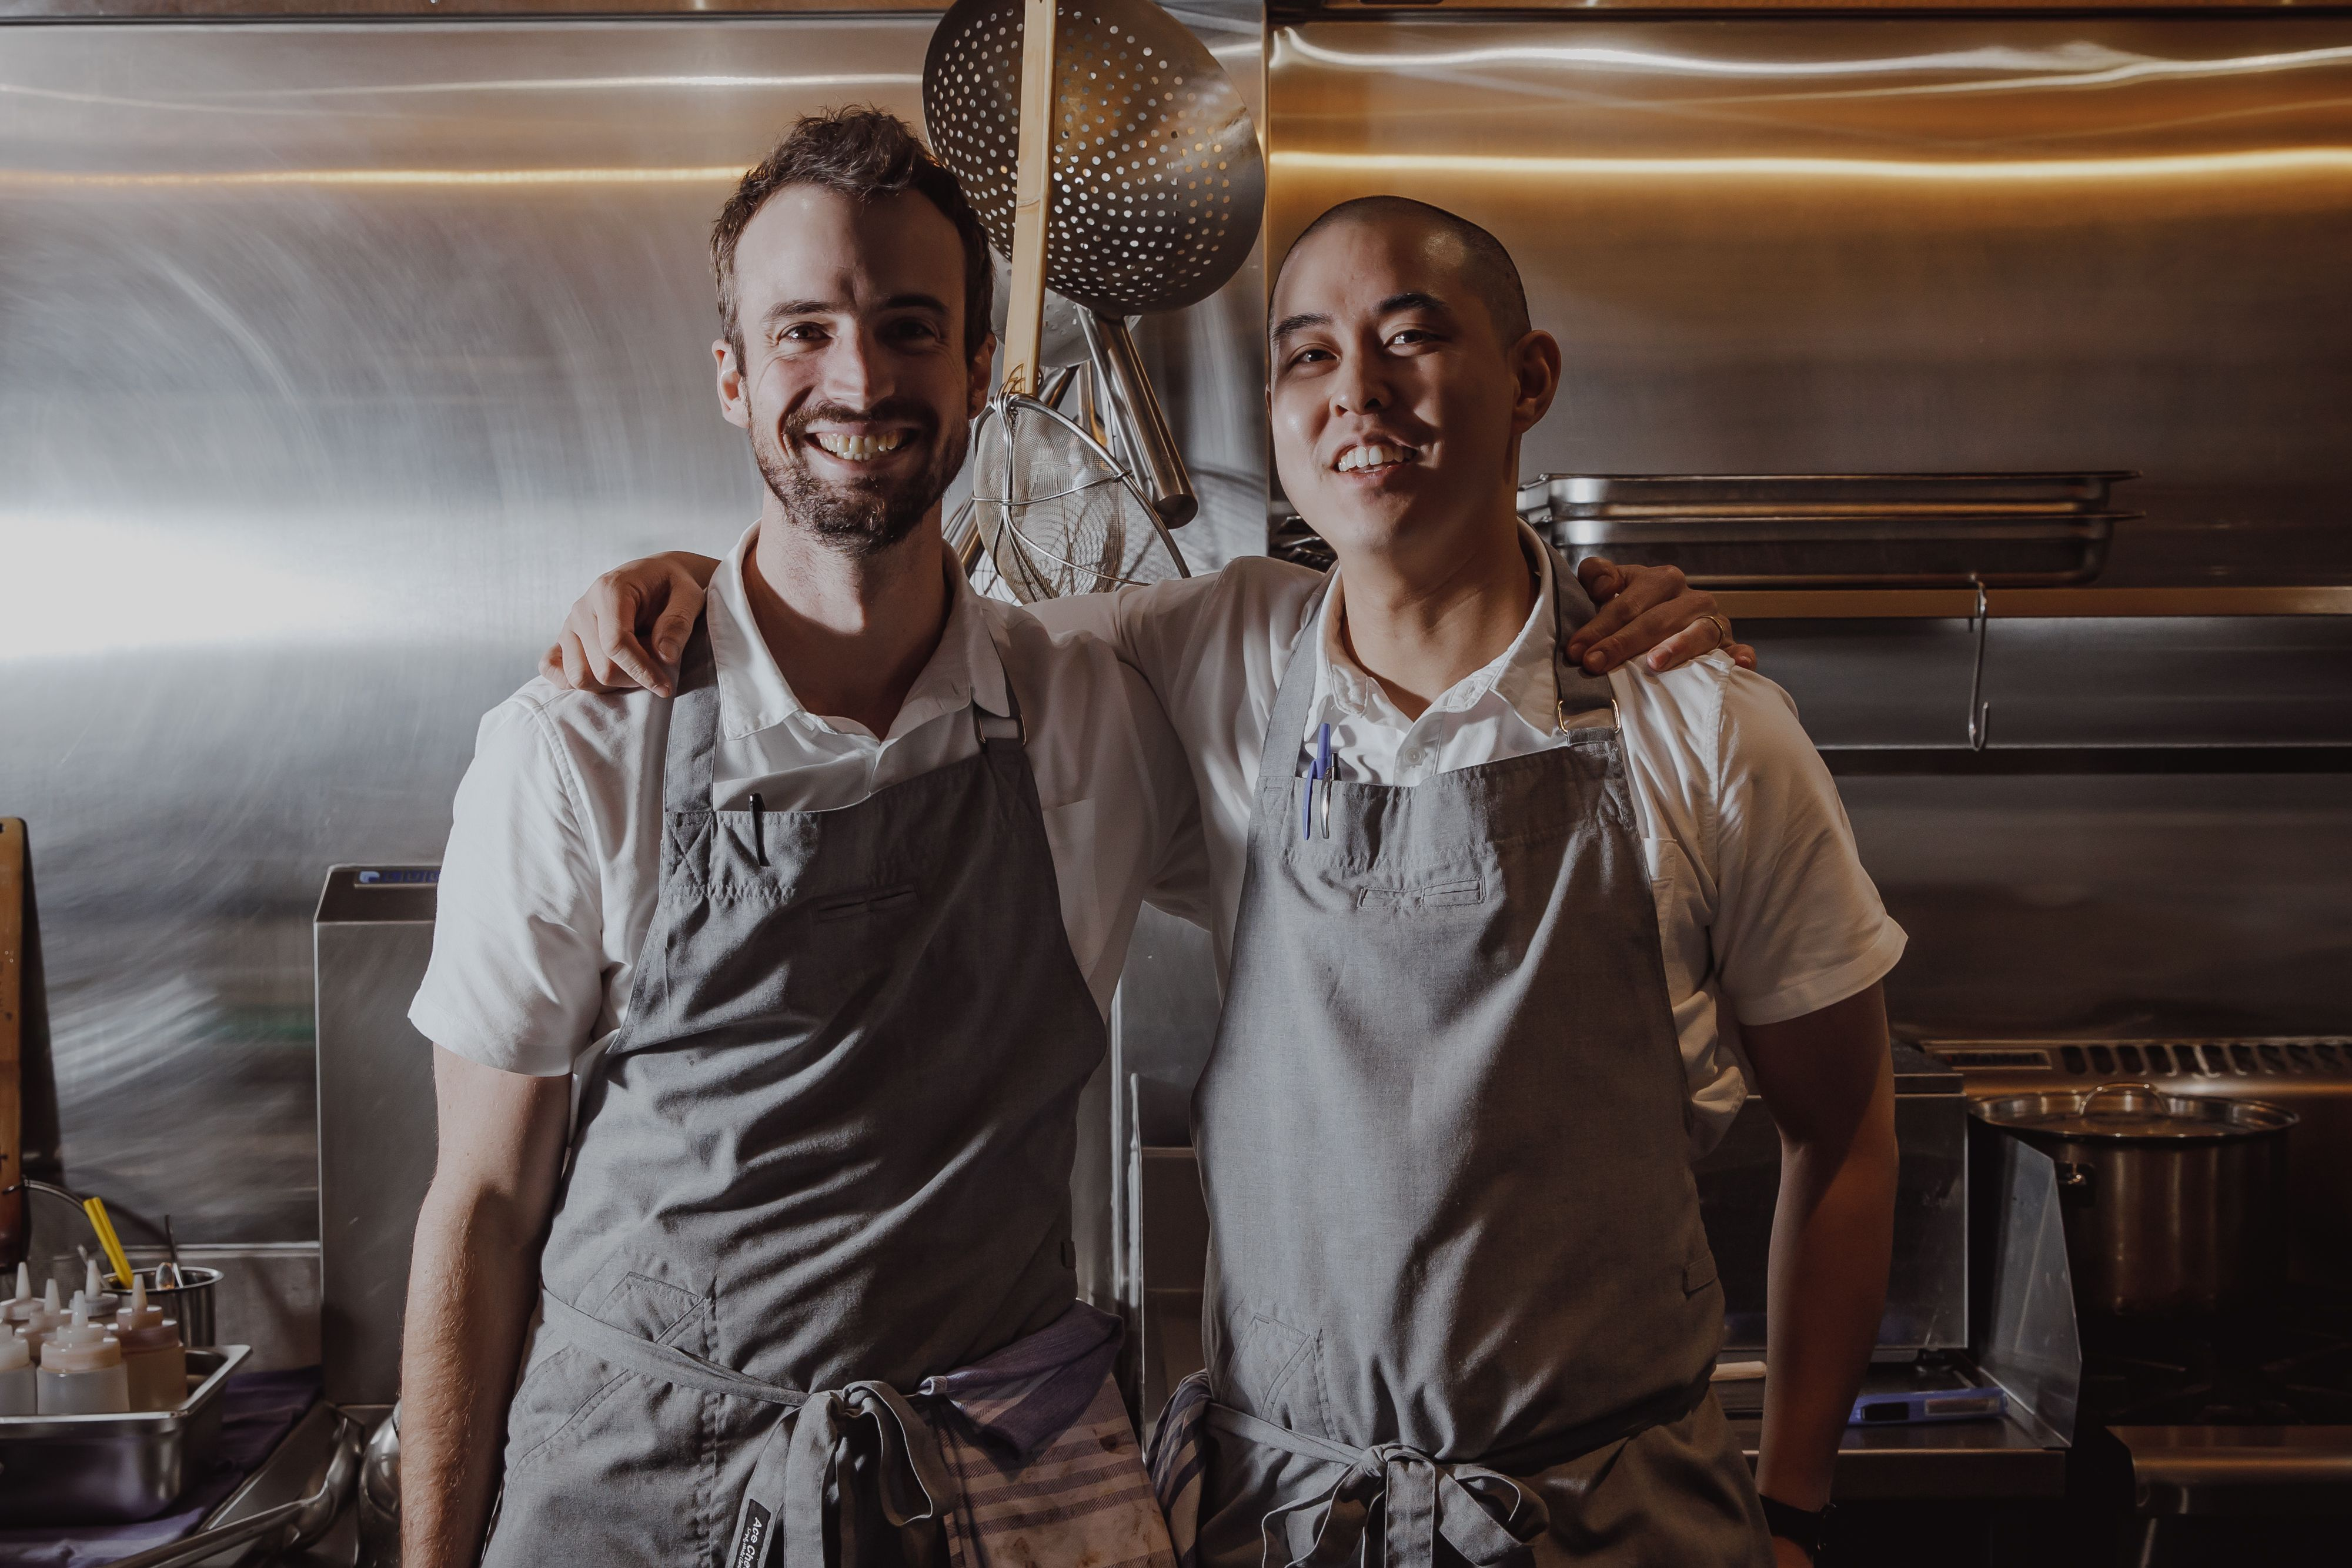 Chefs Ned Trumble & Keat Lee of Lagoon Dining standing in kitchen smiling